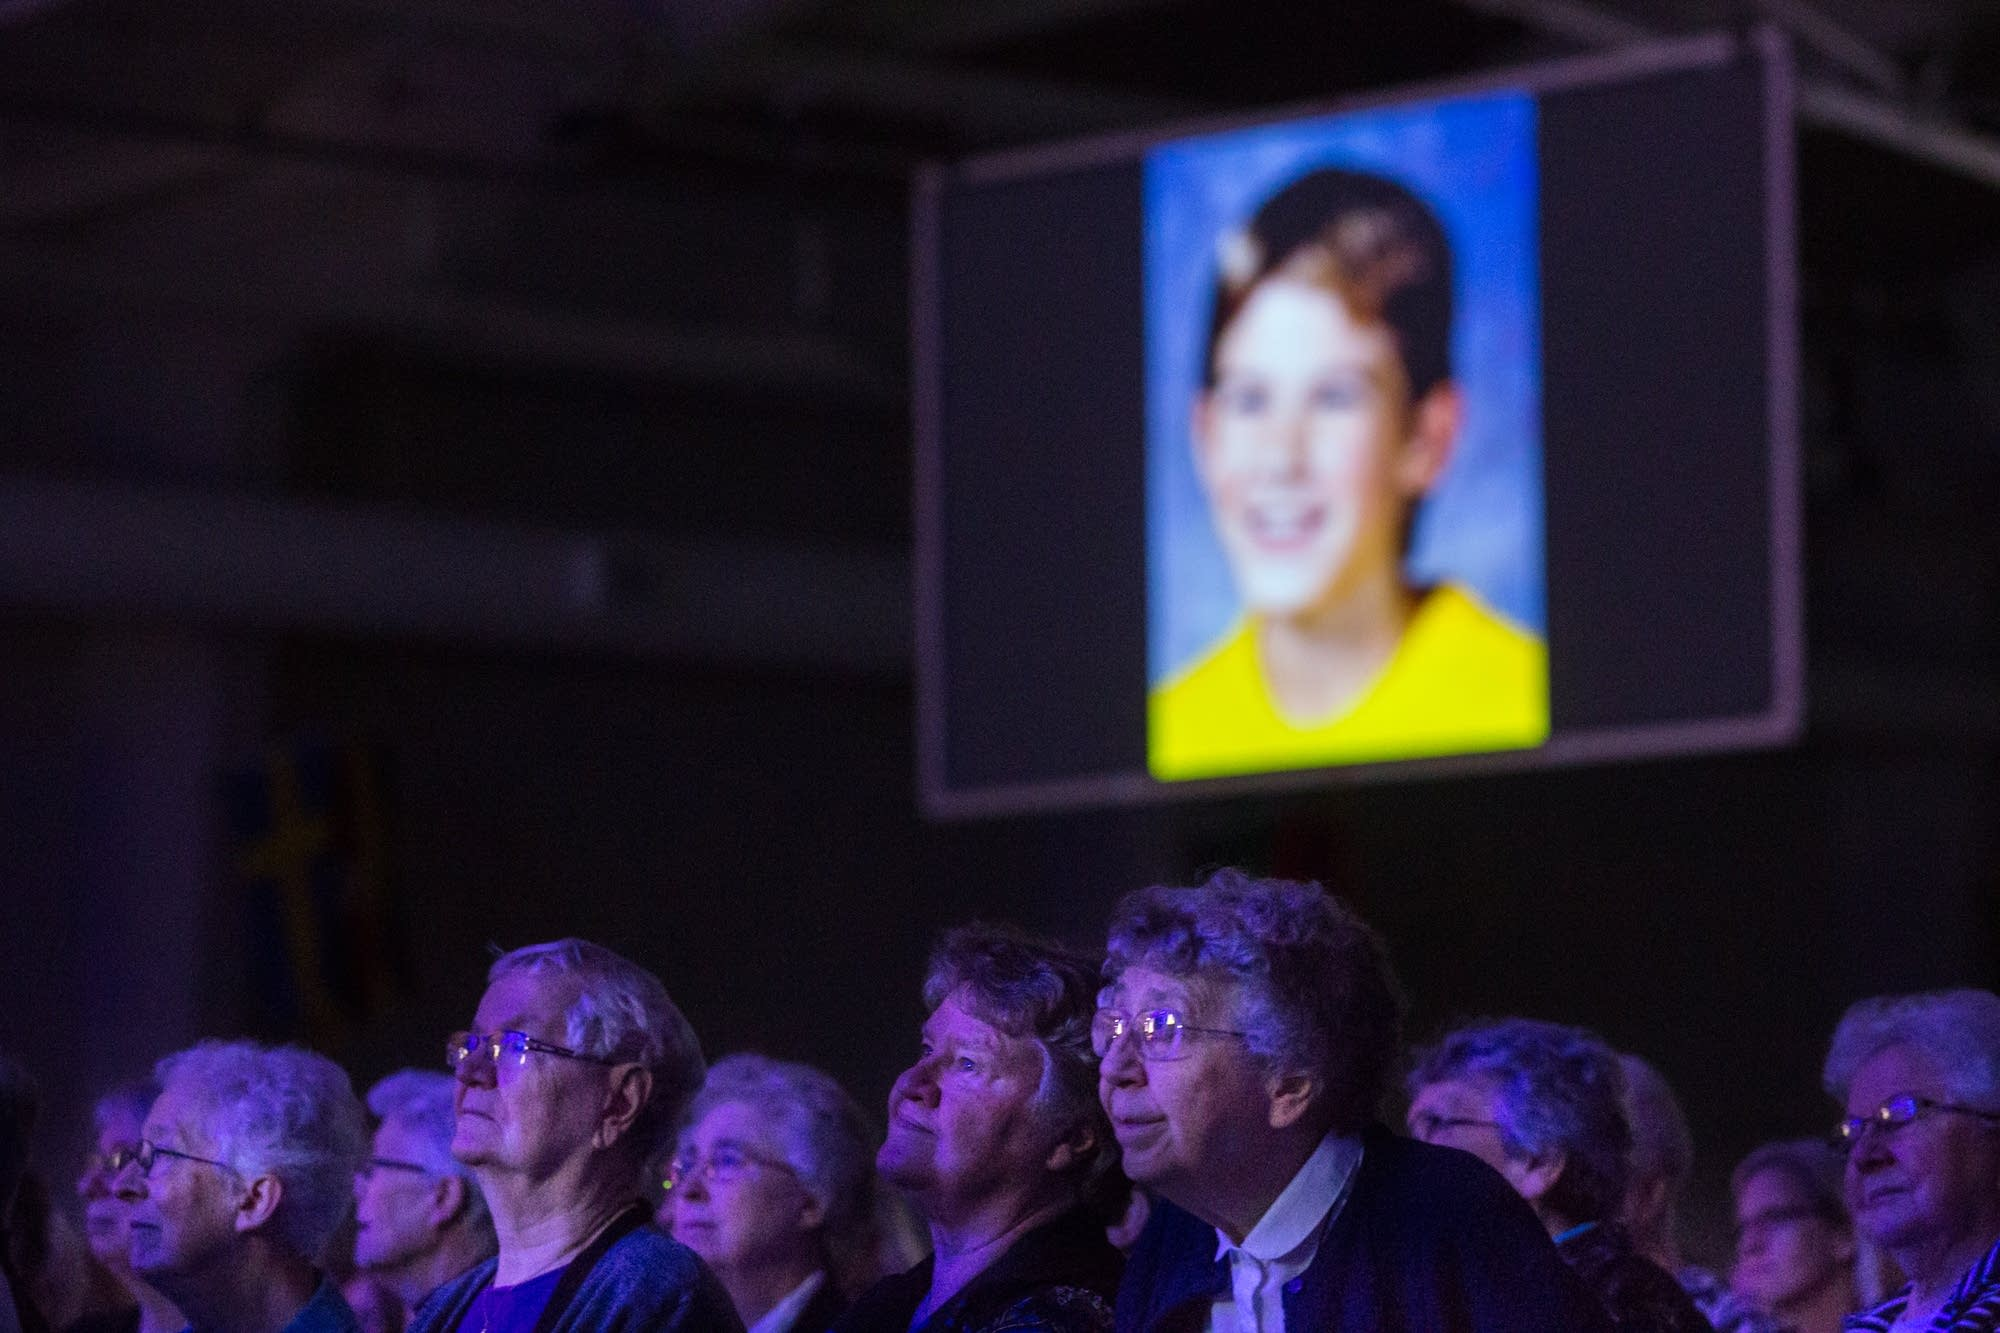 Memorial service for Jacob Wetterling